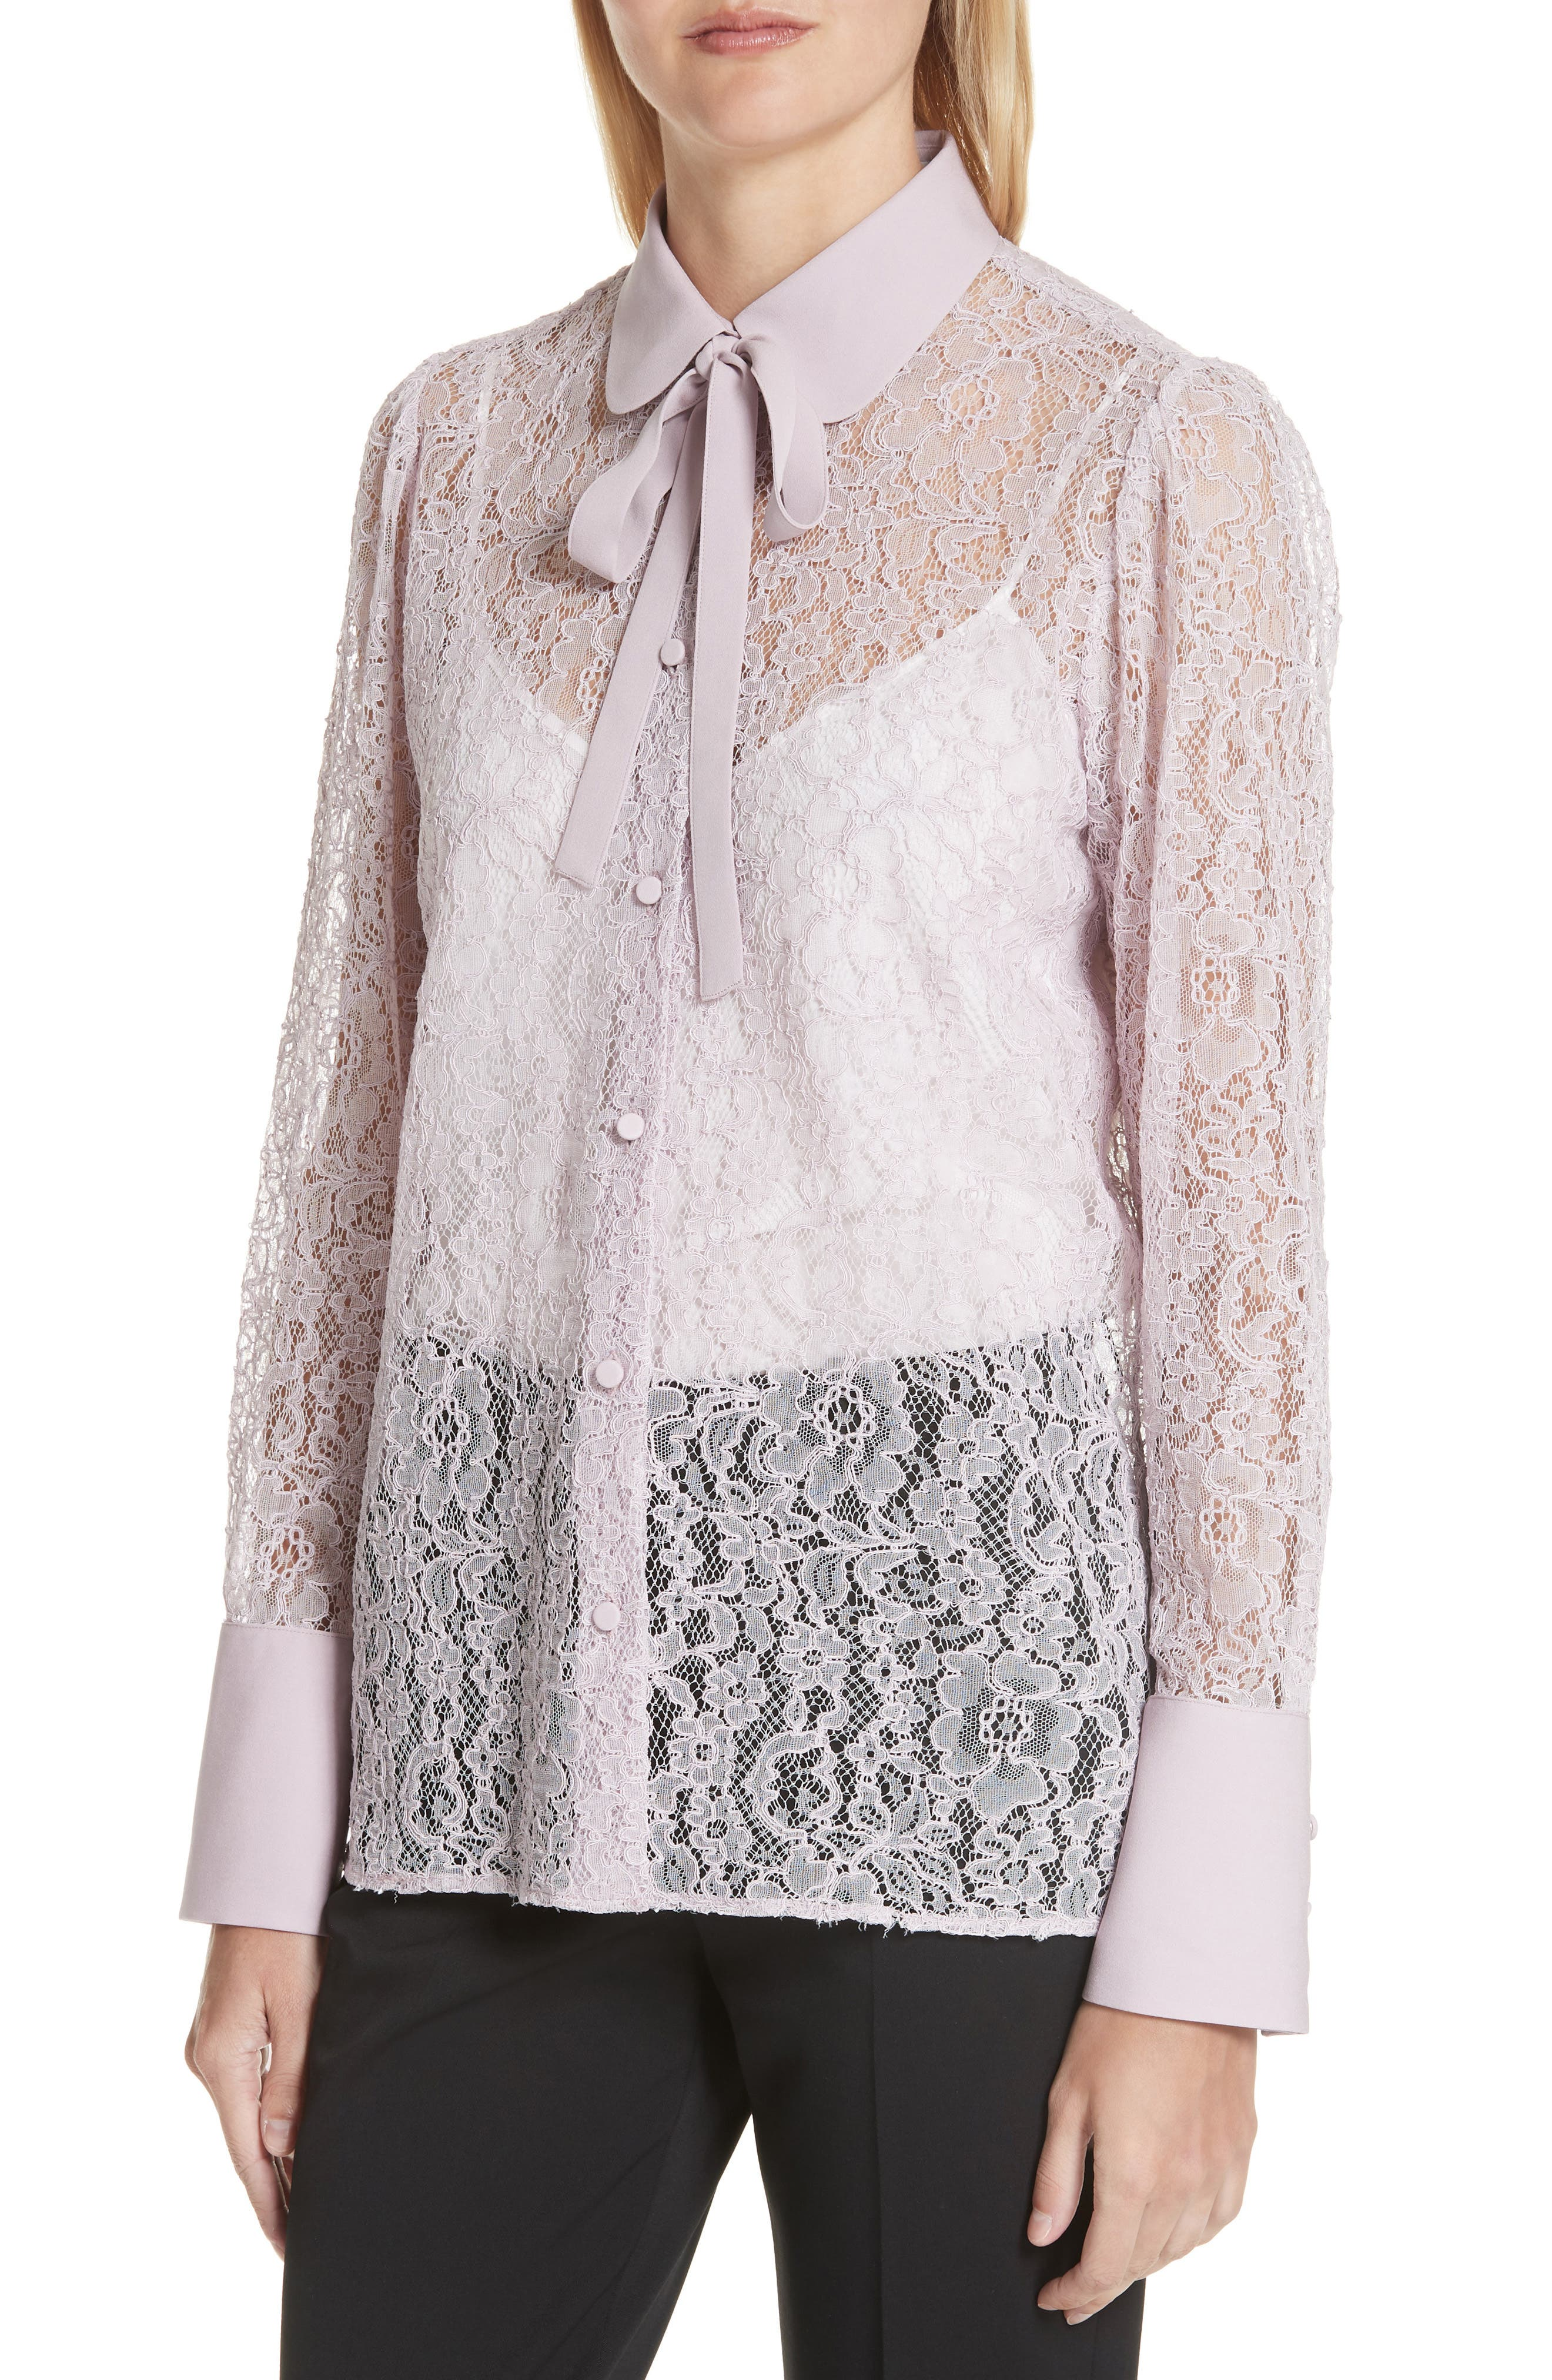 VALENTINO,                             Tie Neck Chantilly Lace Shirt,                             Alternate thumbnail 4, color,                             650